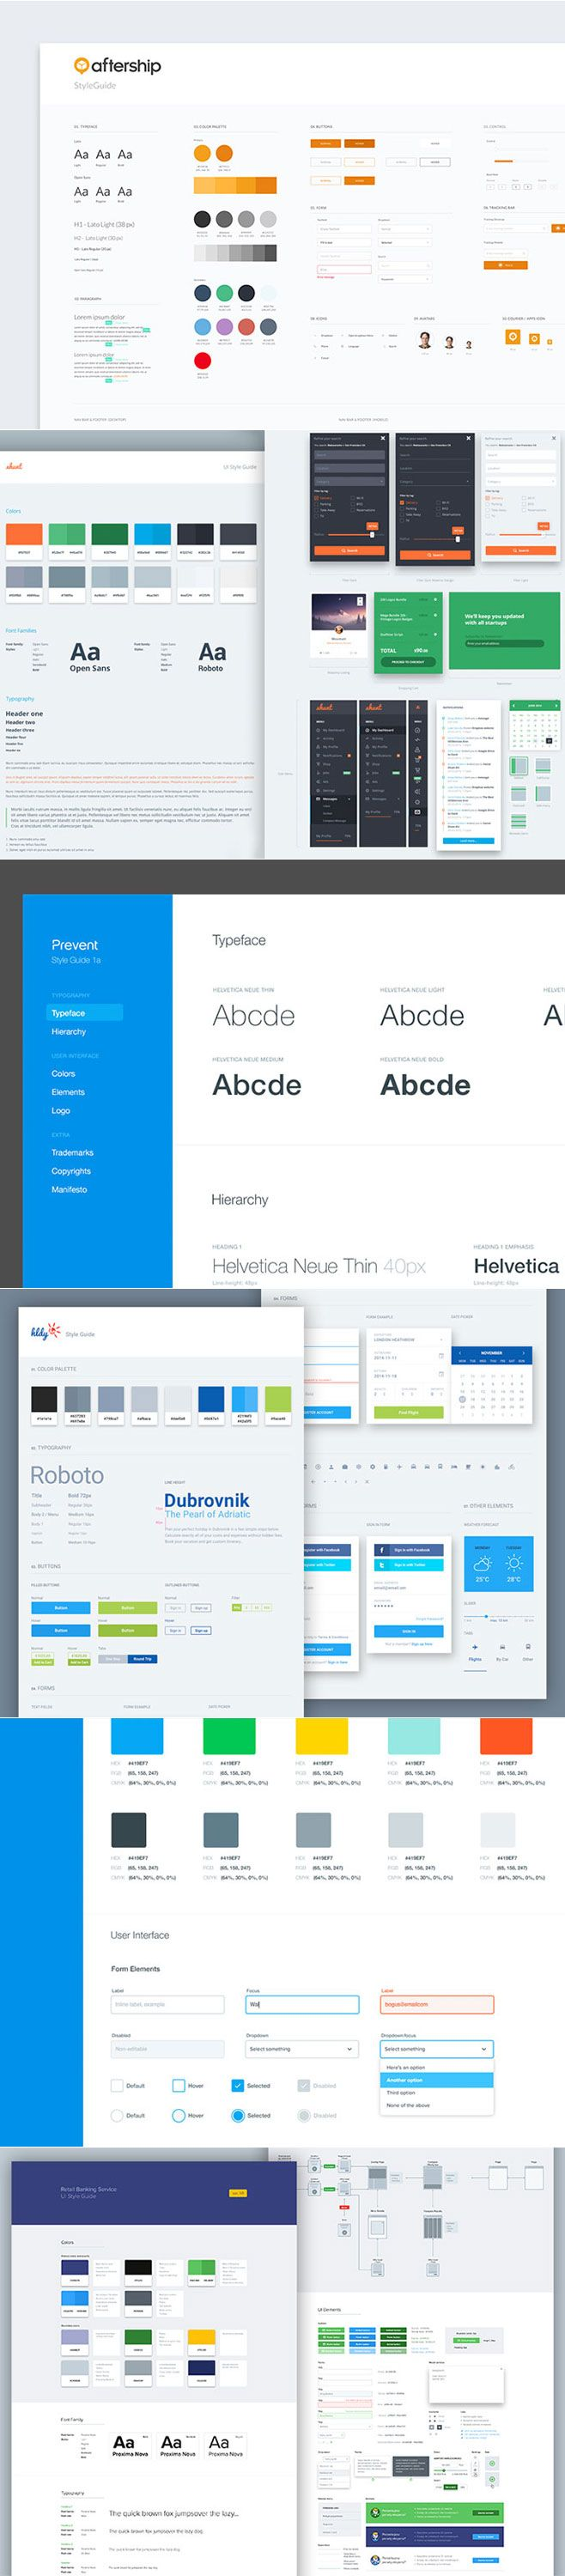 UI style guide created to keep as a reference and make sure the user interface is consistent across the board. It helps build your app by ensuring that typography and UI elements are used in the same way all the time, hooked directly into the same CSS so that any updates will be automatically reflected in the guide.